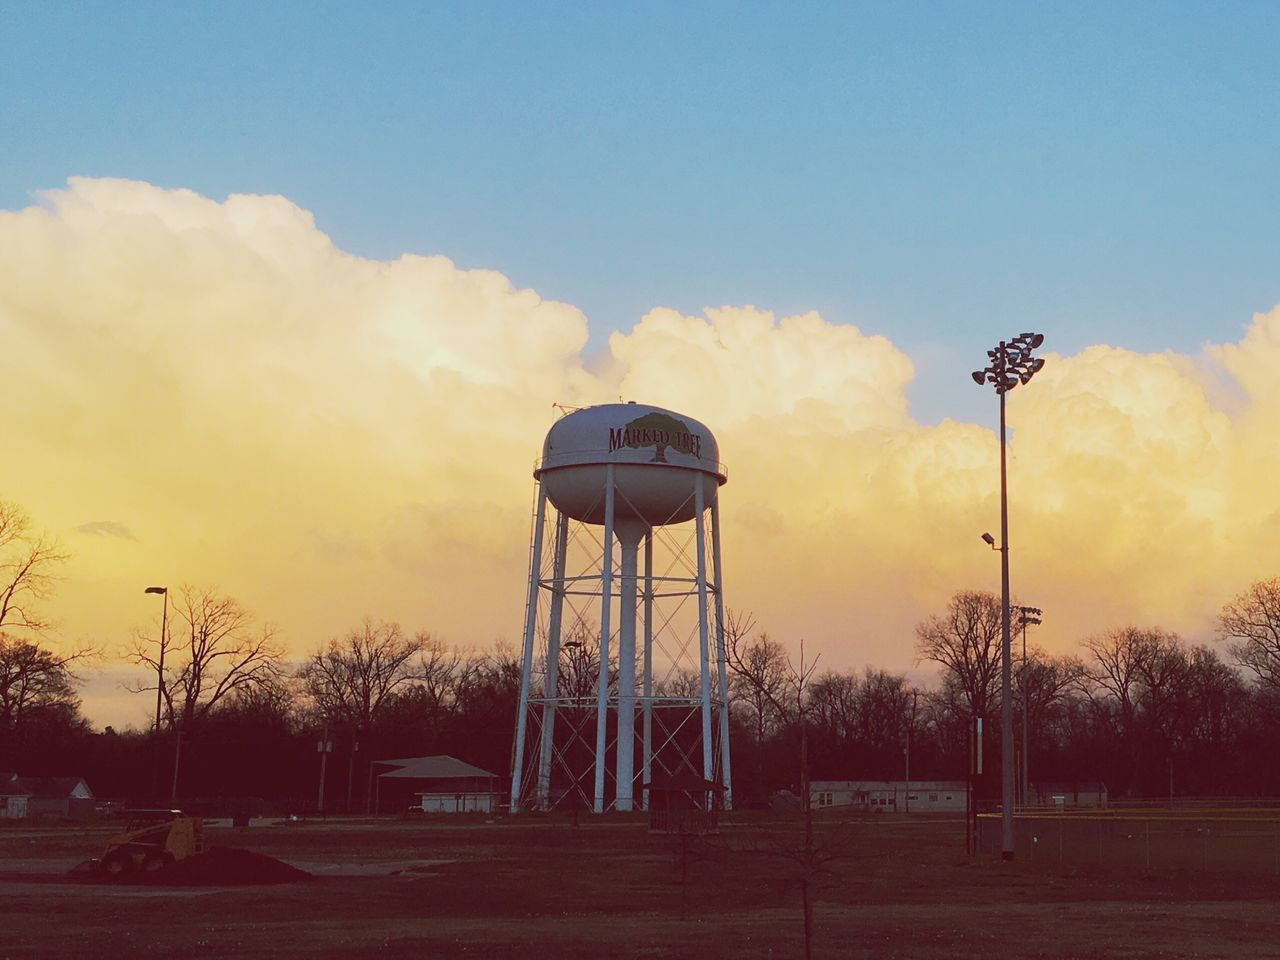 sky, storage tank, water tower - storage tank, cloud - sky, water tank, water conservation, built structure, tree, outdoors, no people, architecture, nature, sunset, bare tree, day